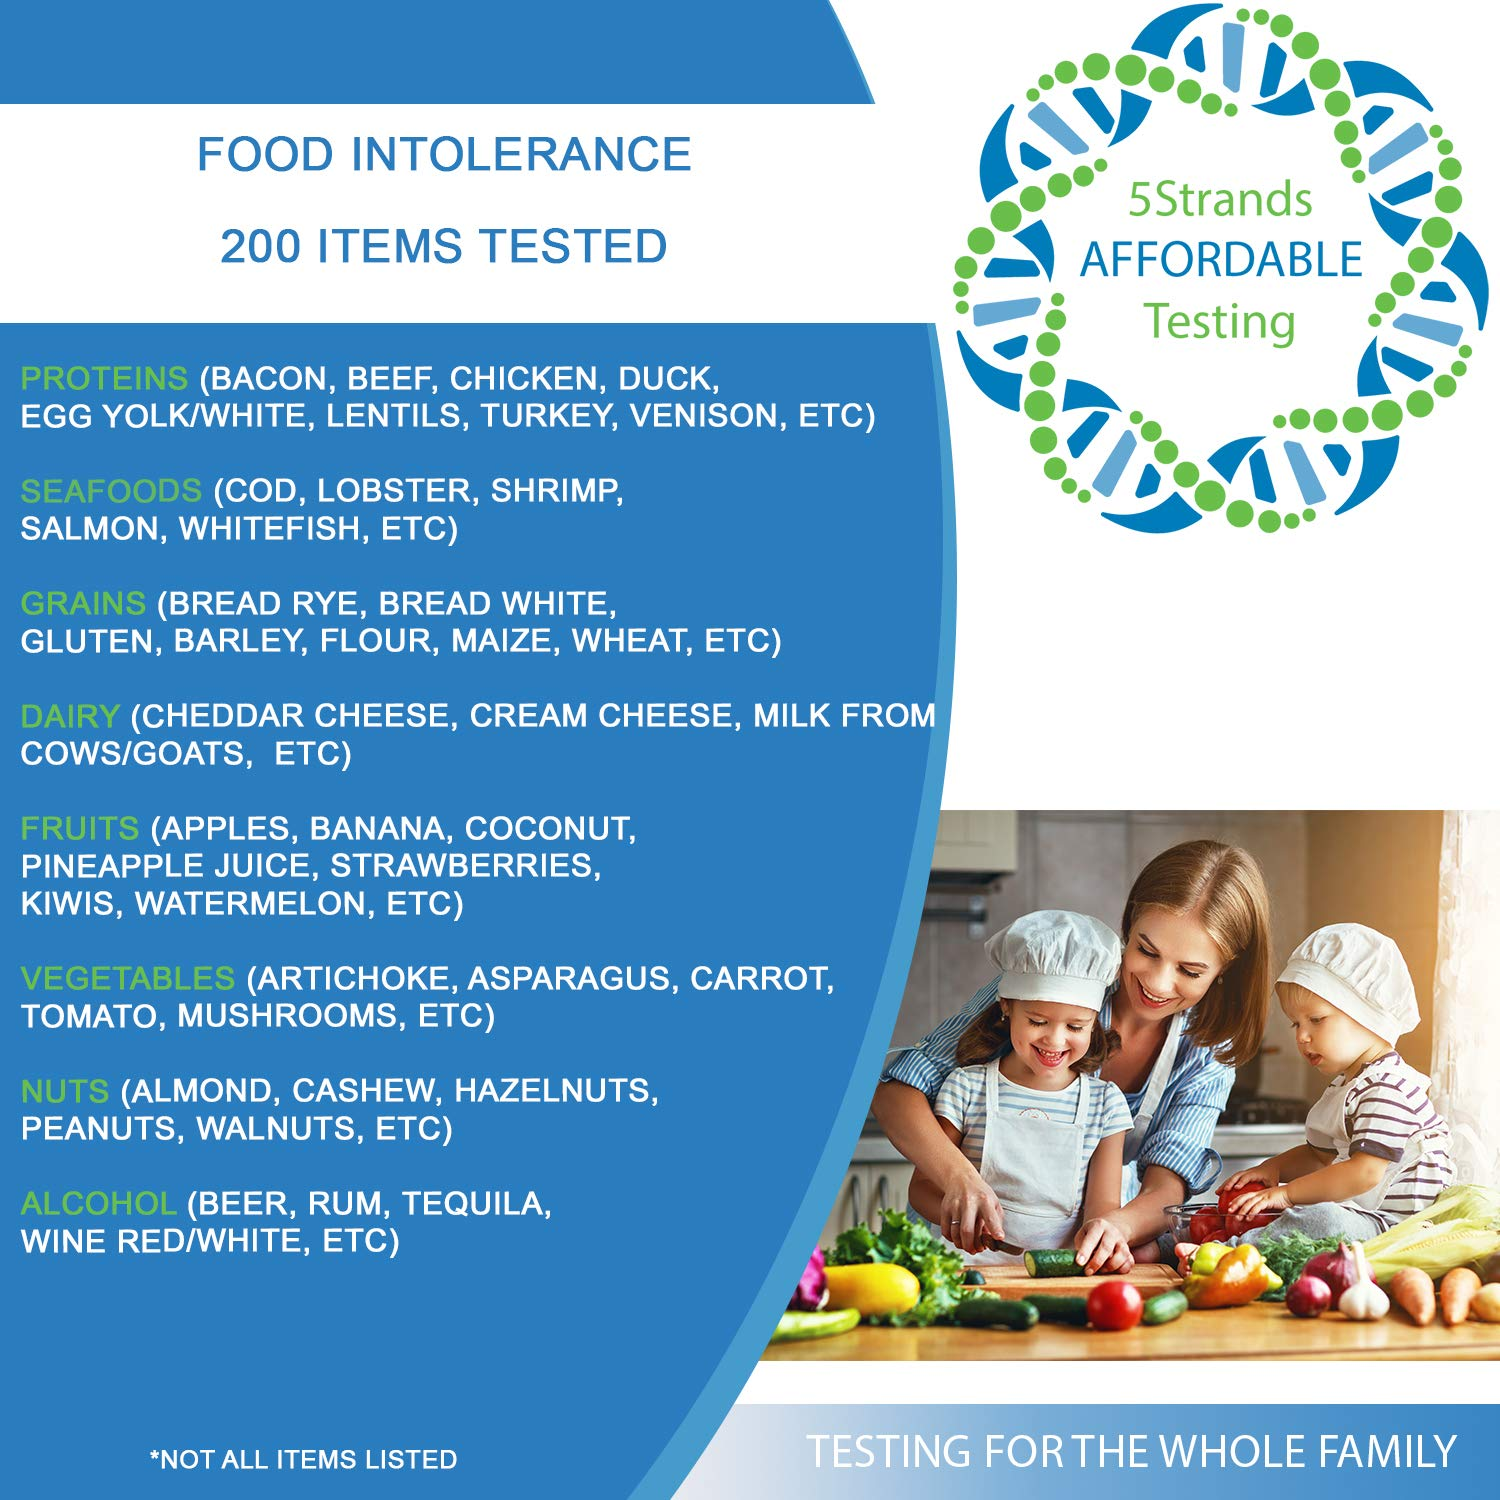 5Strands | Affordable Allergy & Intolerance Adult Test | at Home Environmental & Food Intolerance Kit | Tests for Over 350 Sensitivities & Allergens | Hair Analysis | Results in 1-2 Weeks | 1 Pack by 5Strands (Image #3)